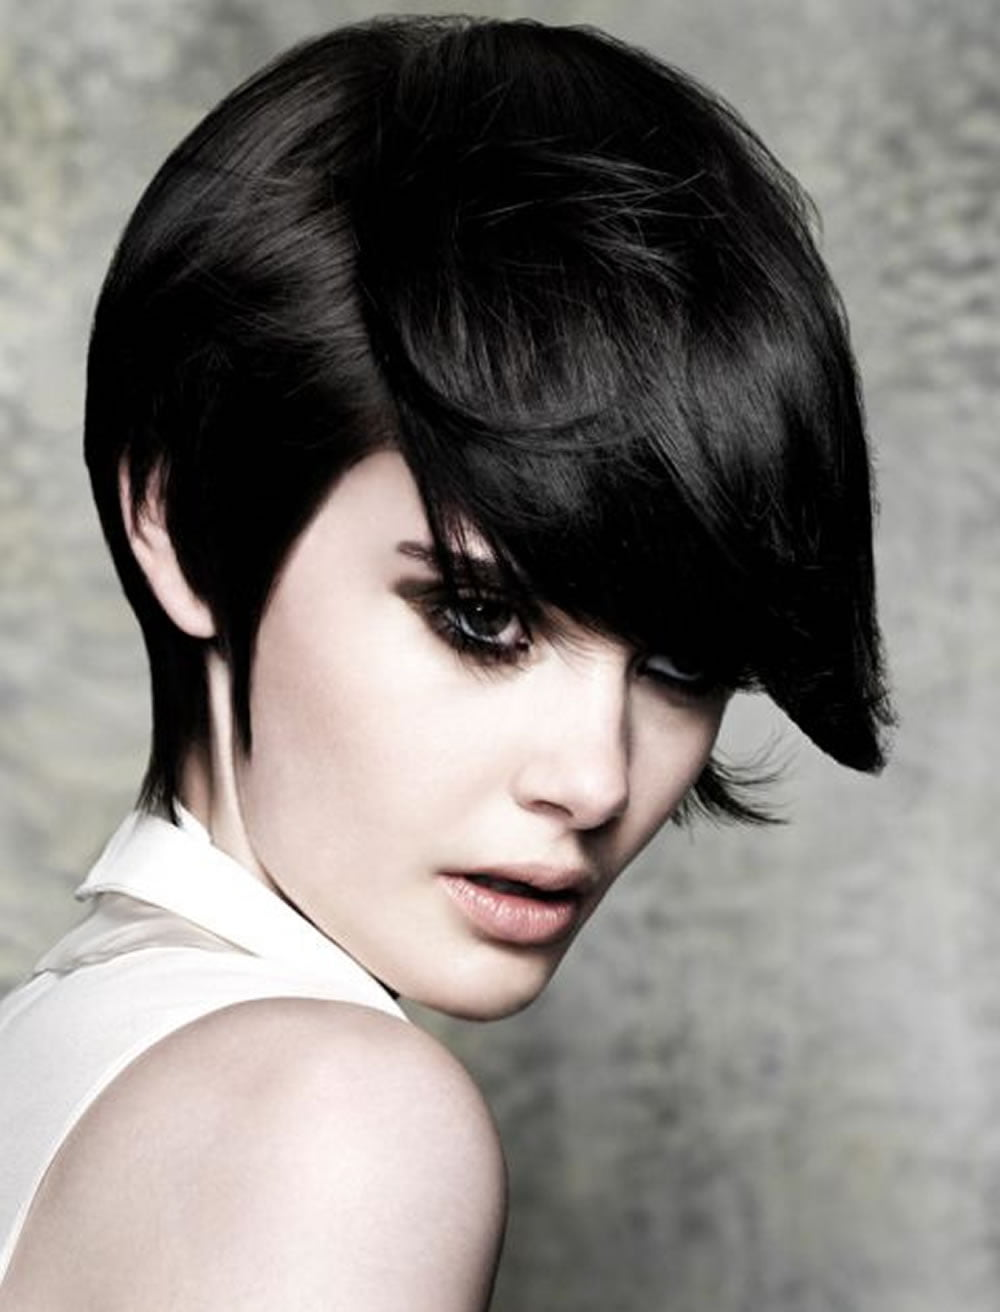 new easy hair style easy hairstyles for hair 2018 2019 amp pixie hair cuts 3416